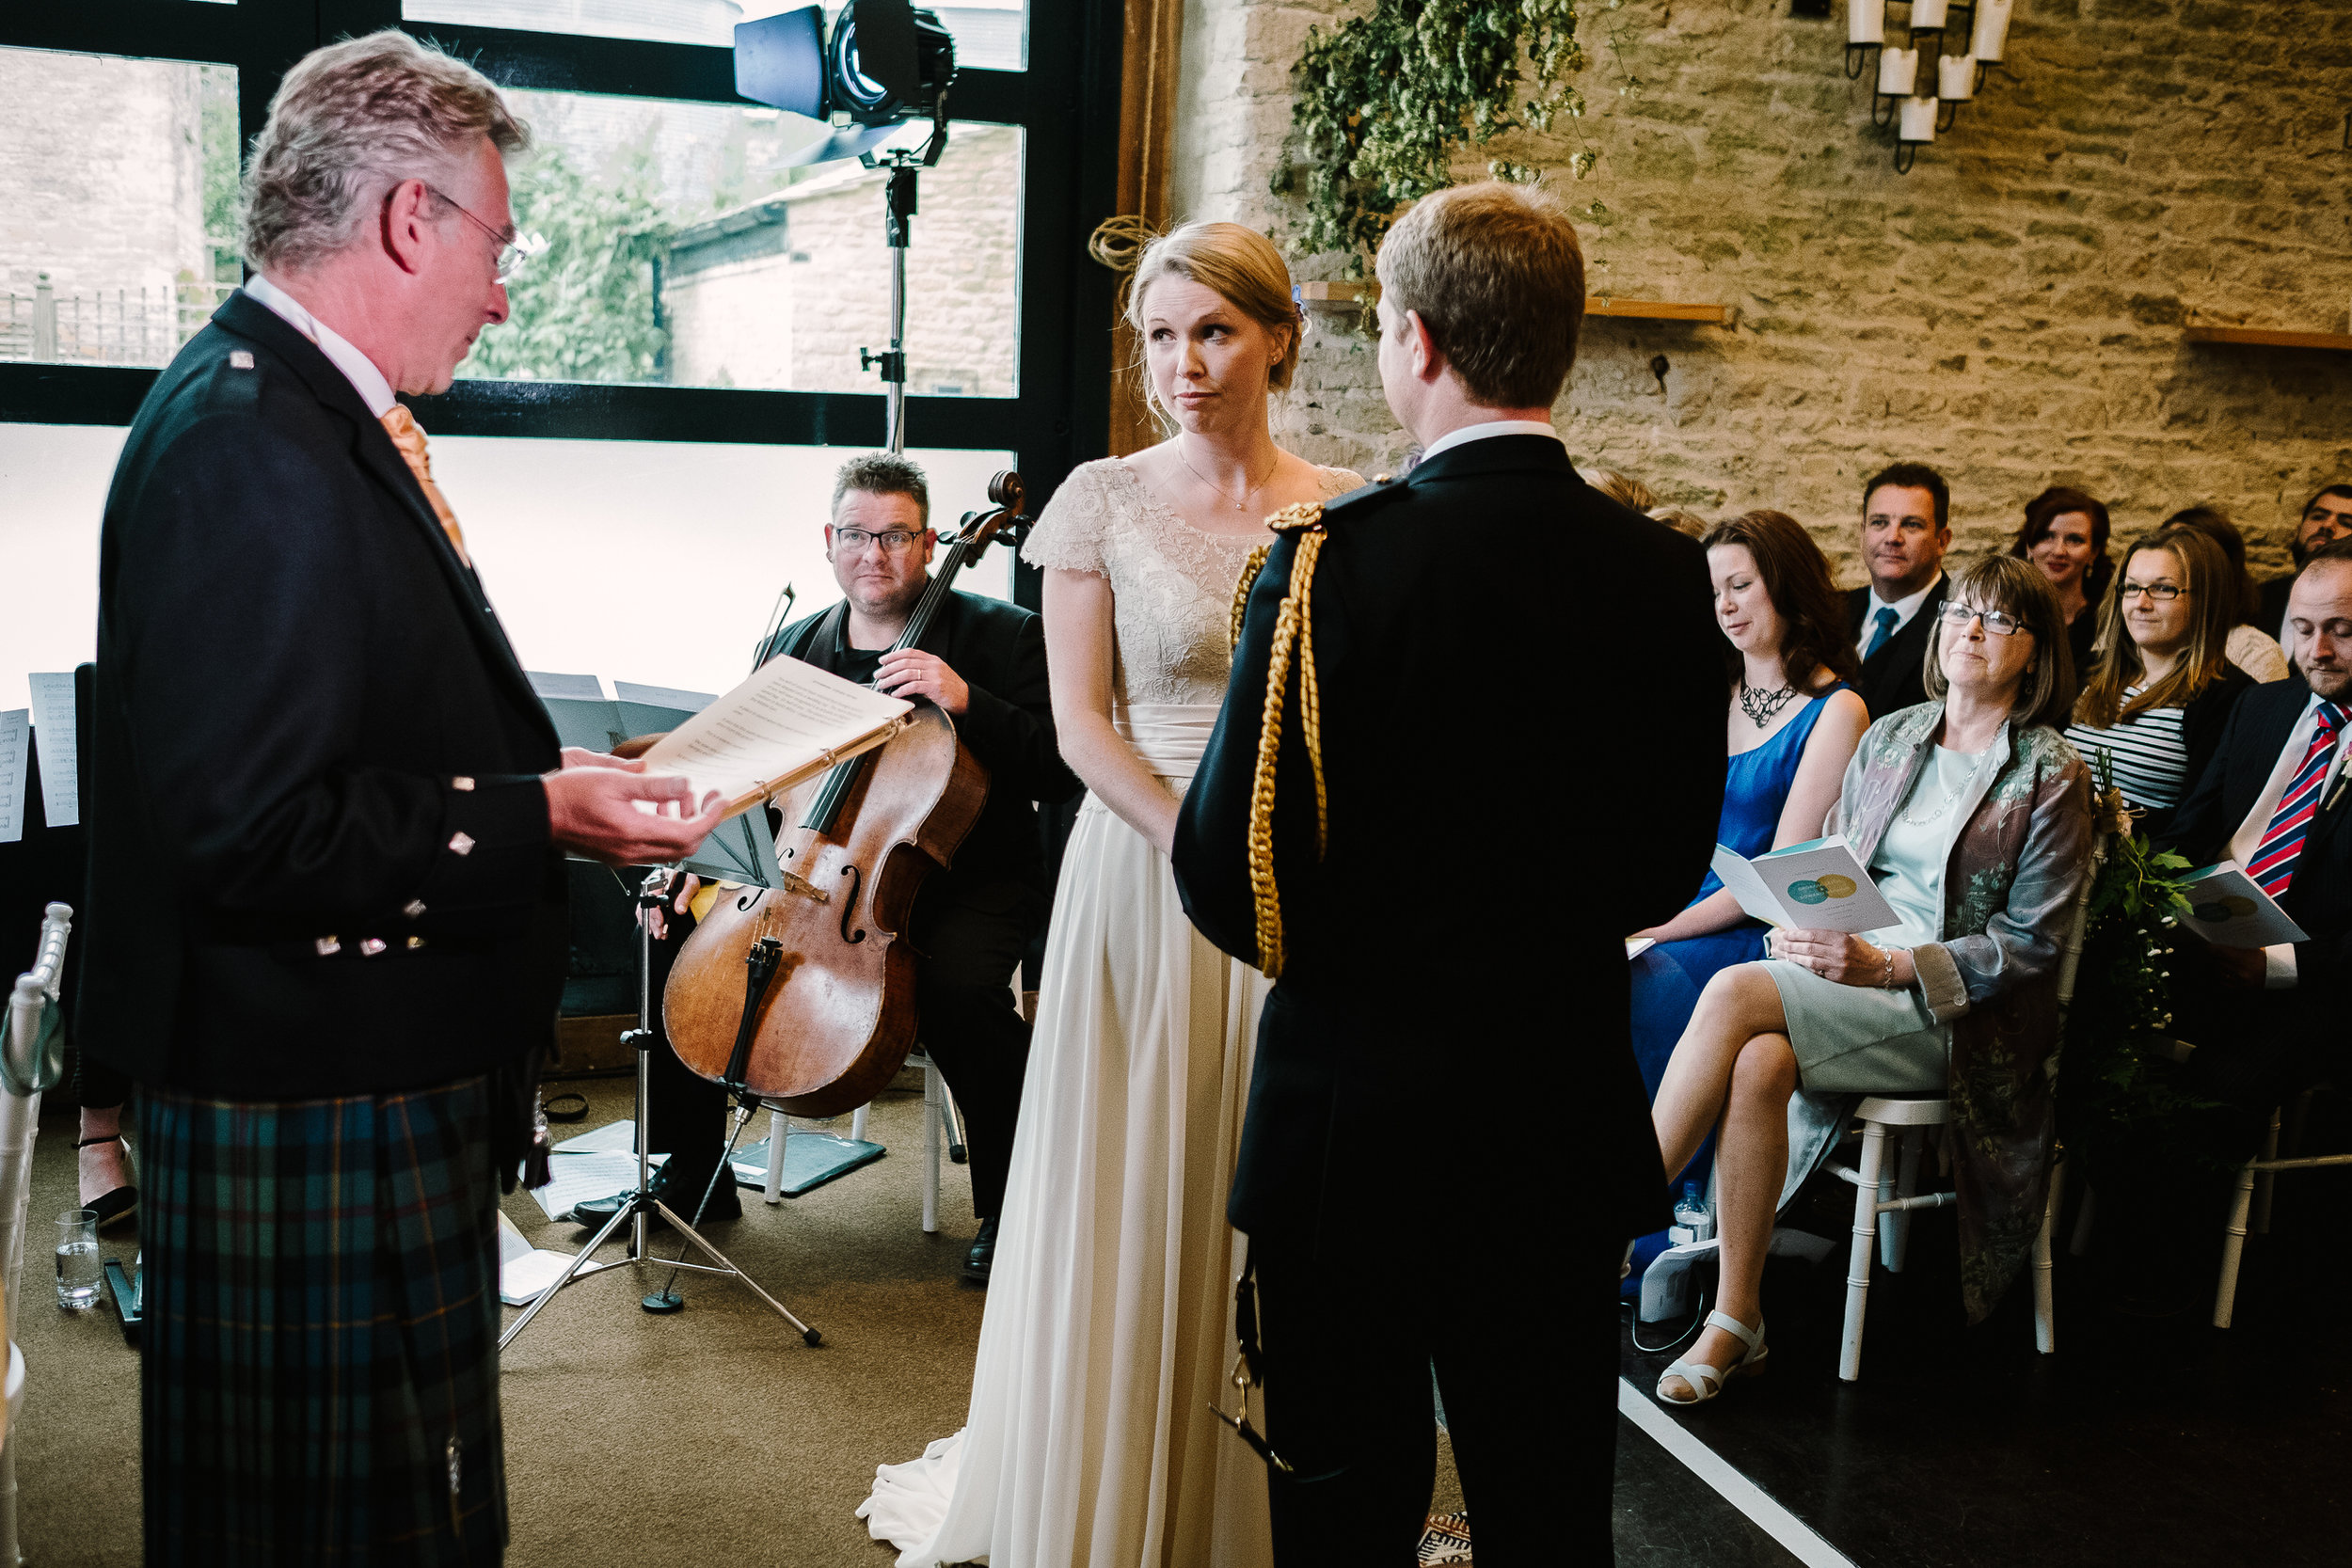 A celebrant leads the ceremony at a wedding at Merriscourt Wedding Venue, Oxfordshire